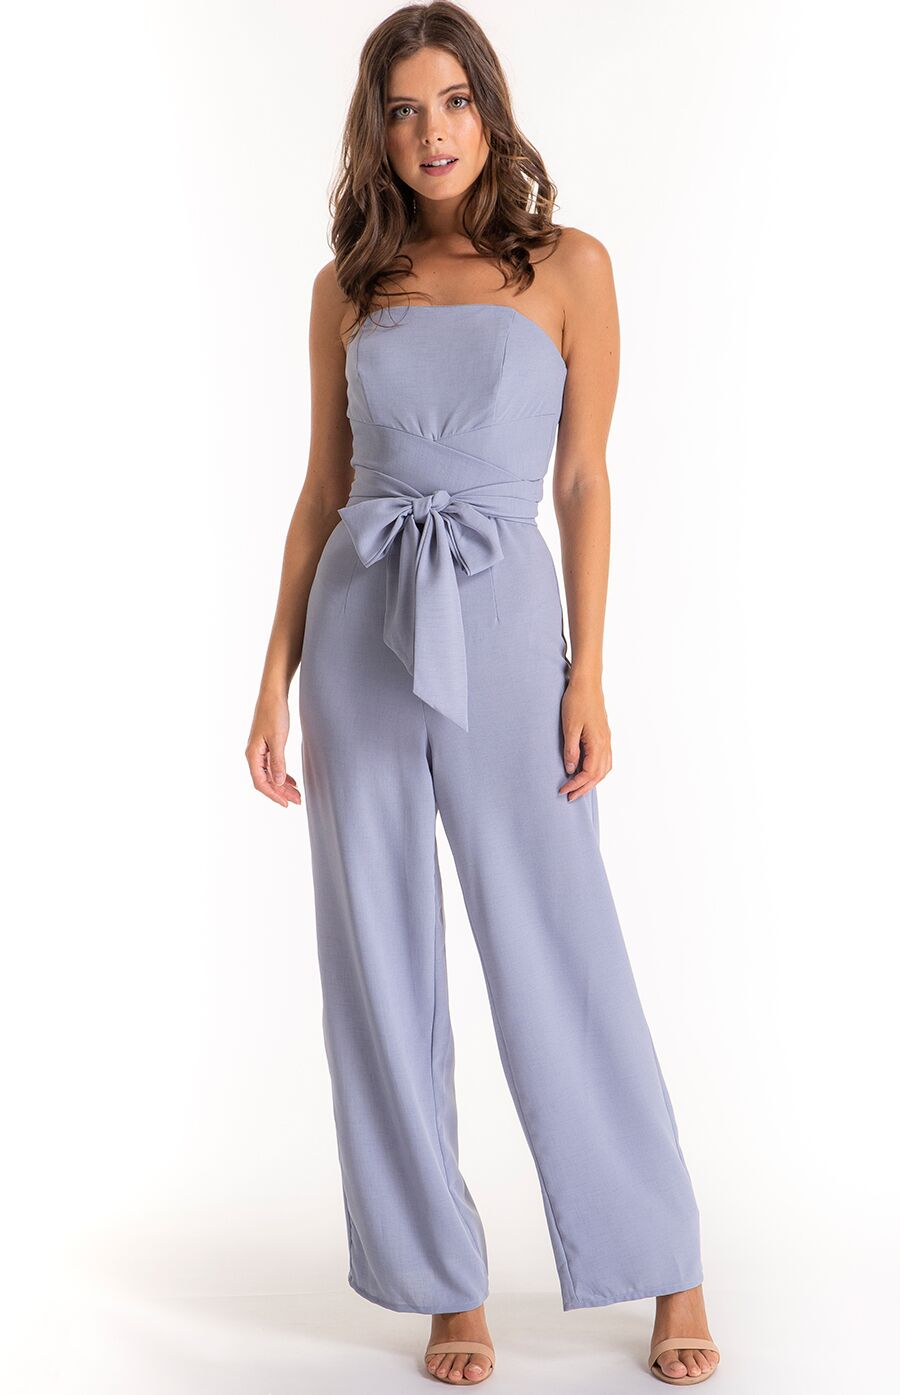 6604f3445510 Tiffany Strapless Wrap Style Belt Jumpsuit in Grey/Blue - The Dress Emporium